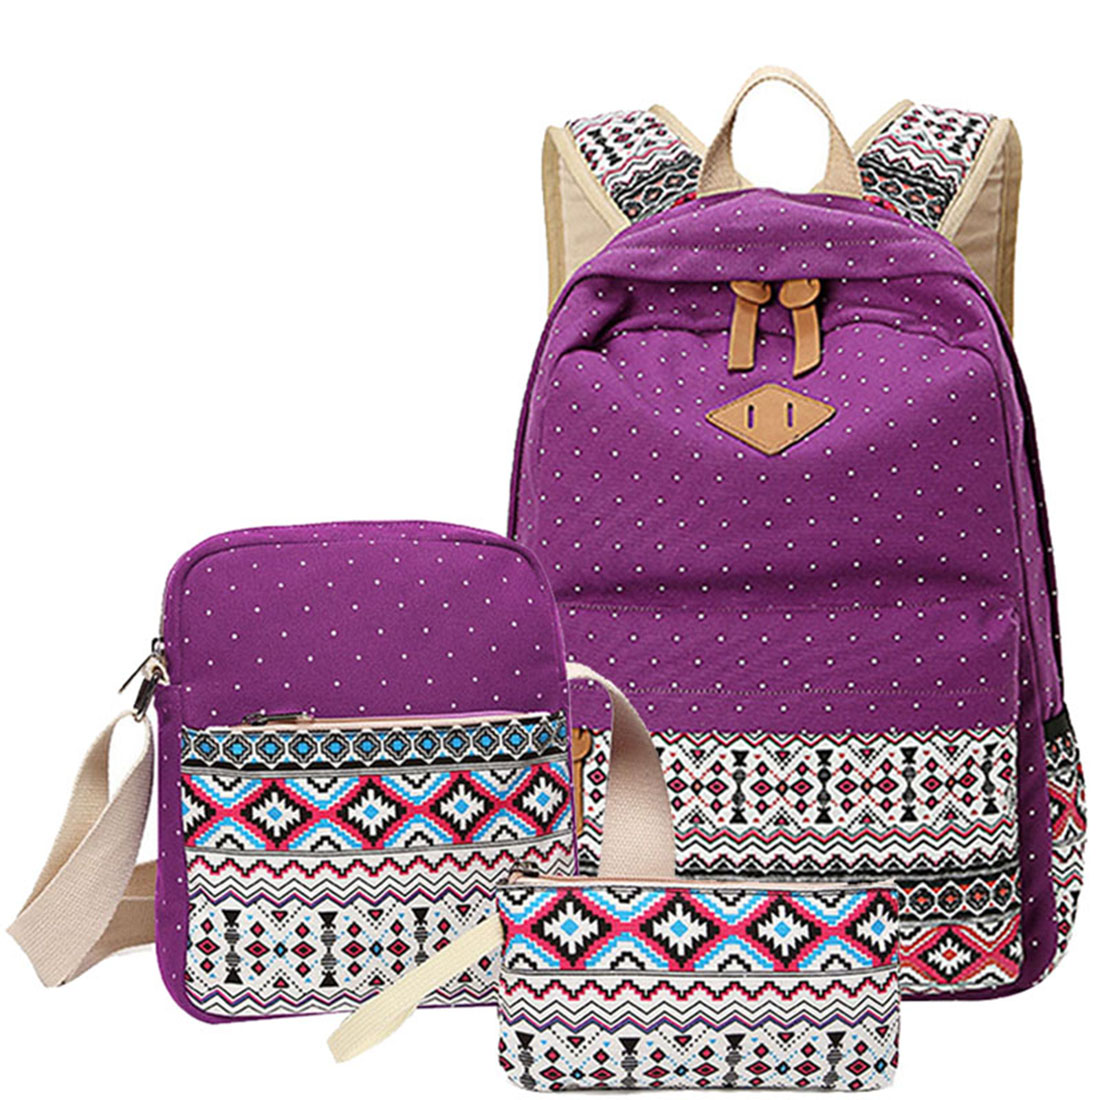 SNNY 3 pcs/set Polka Dot Printing Women Backpack Cute Lightweight Canvas bags Middle High School Bags for Teenage Girls, Purple